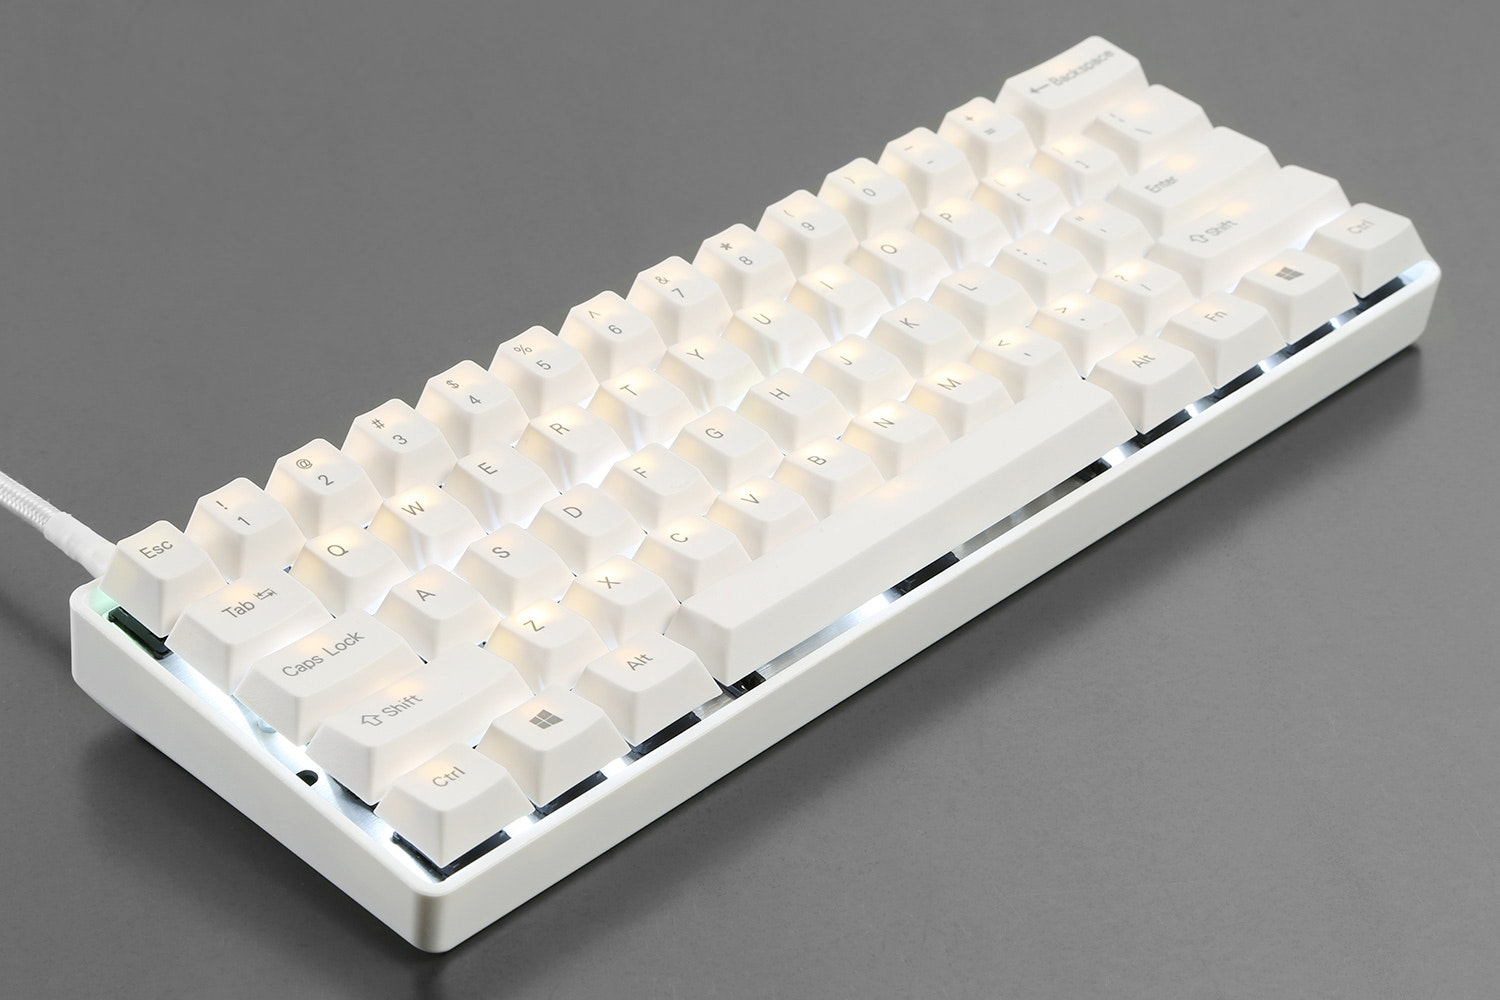 KC60 Mechanical Keyboard